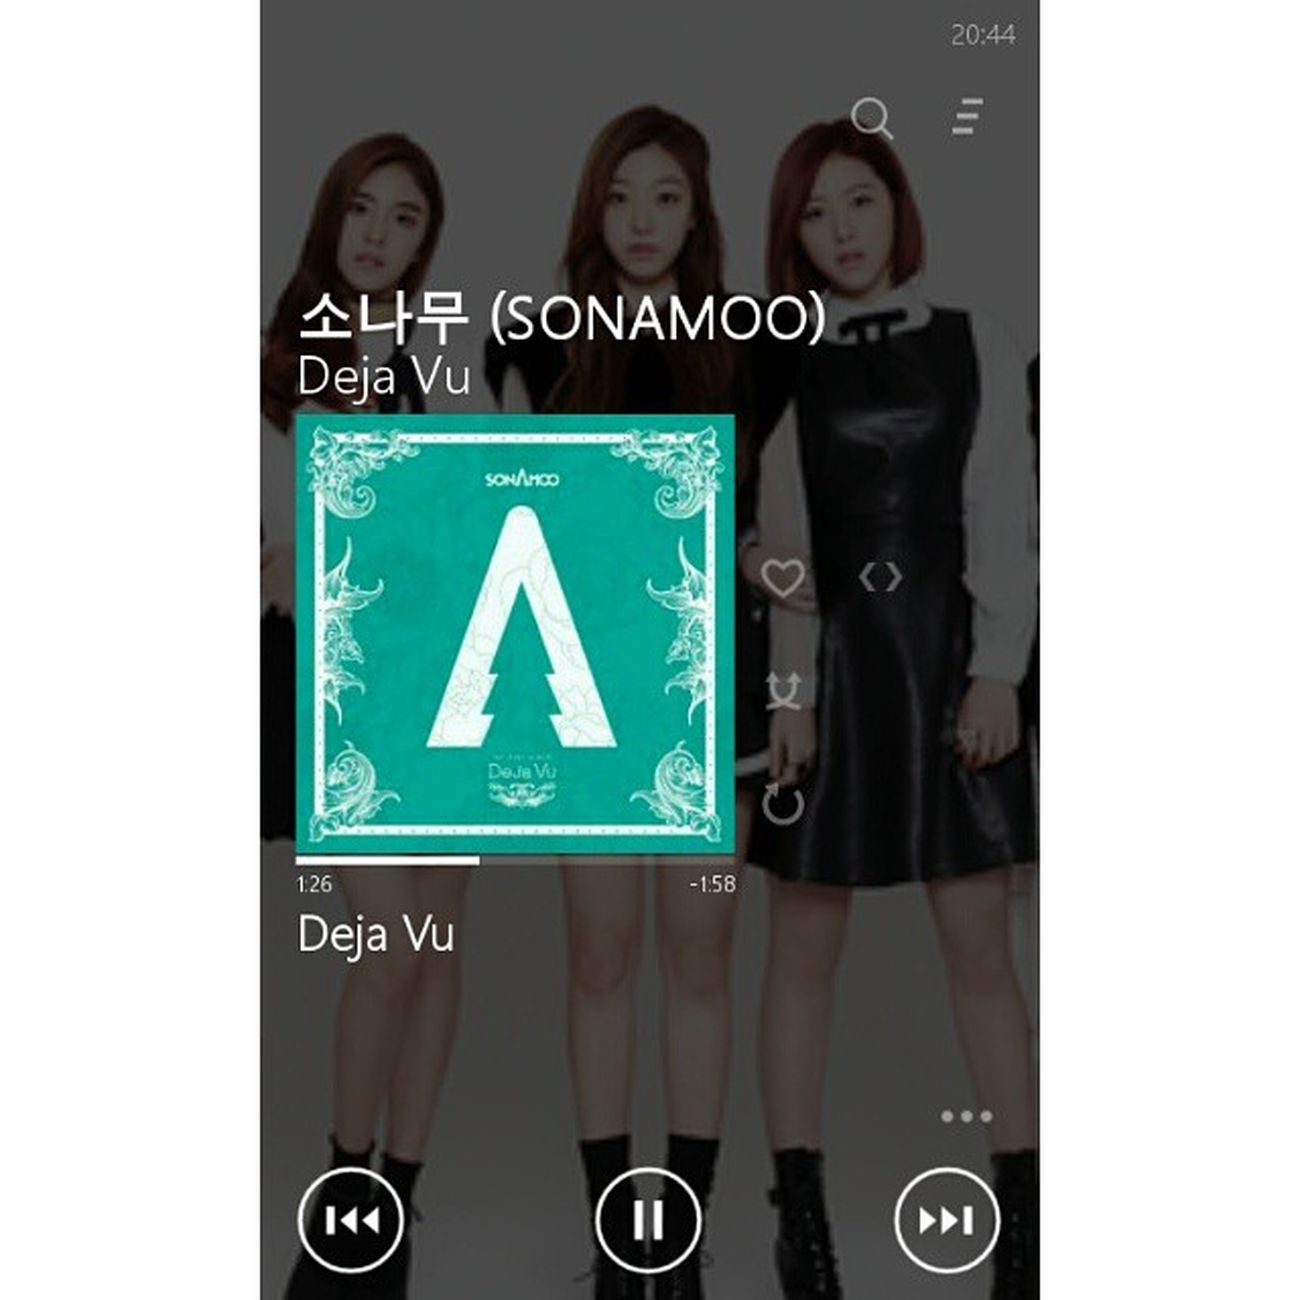 It's like deja vu ~ Sonamoo